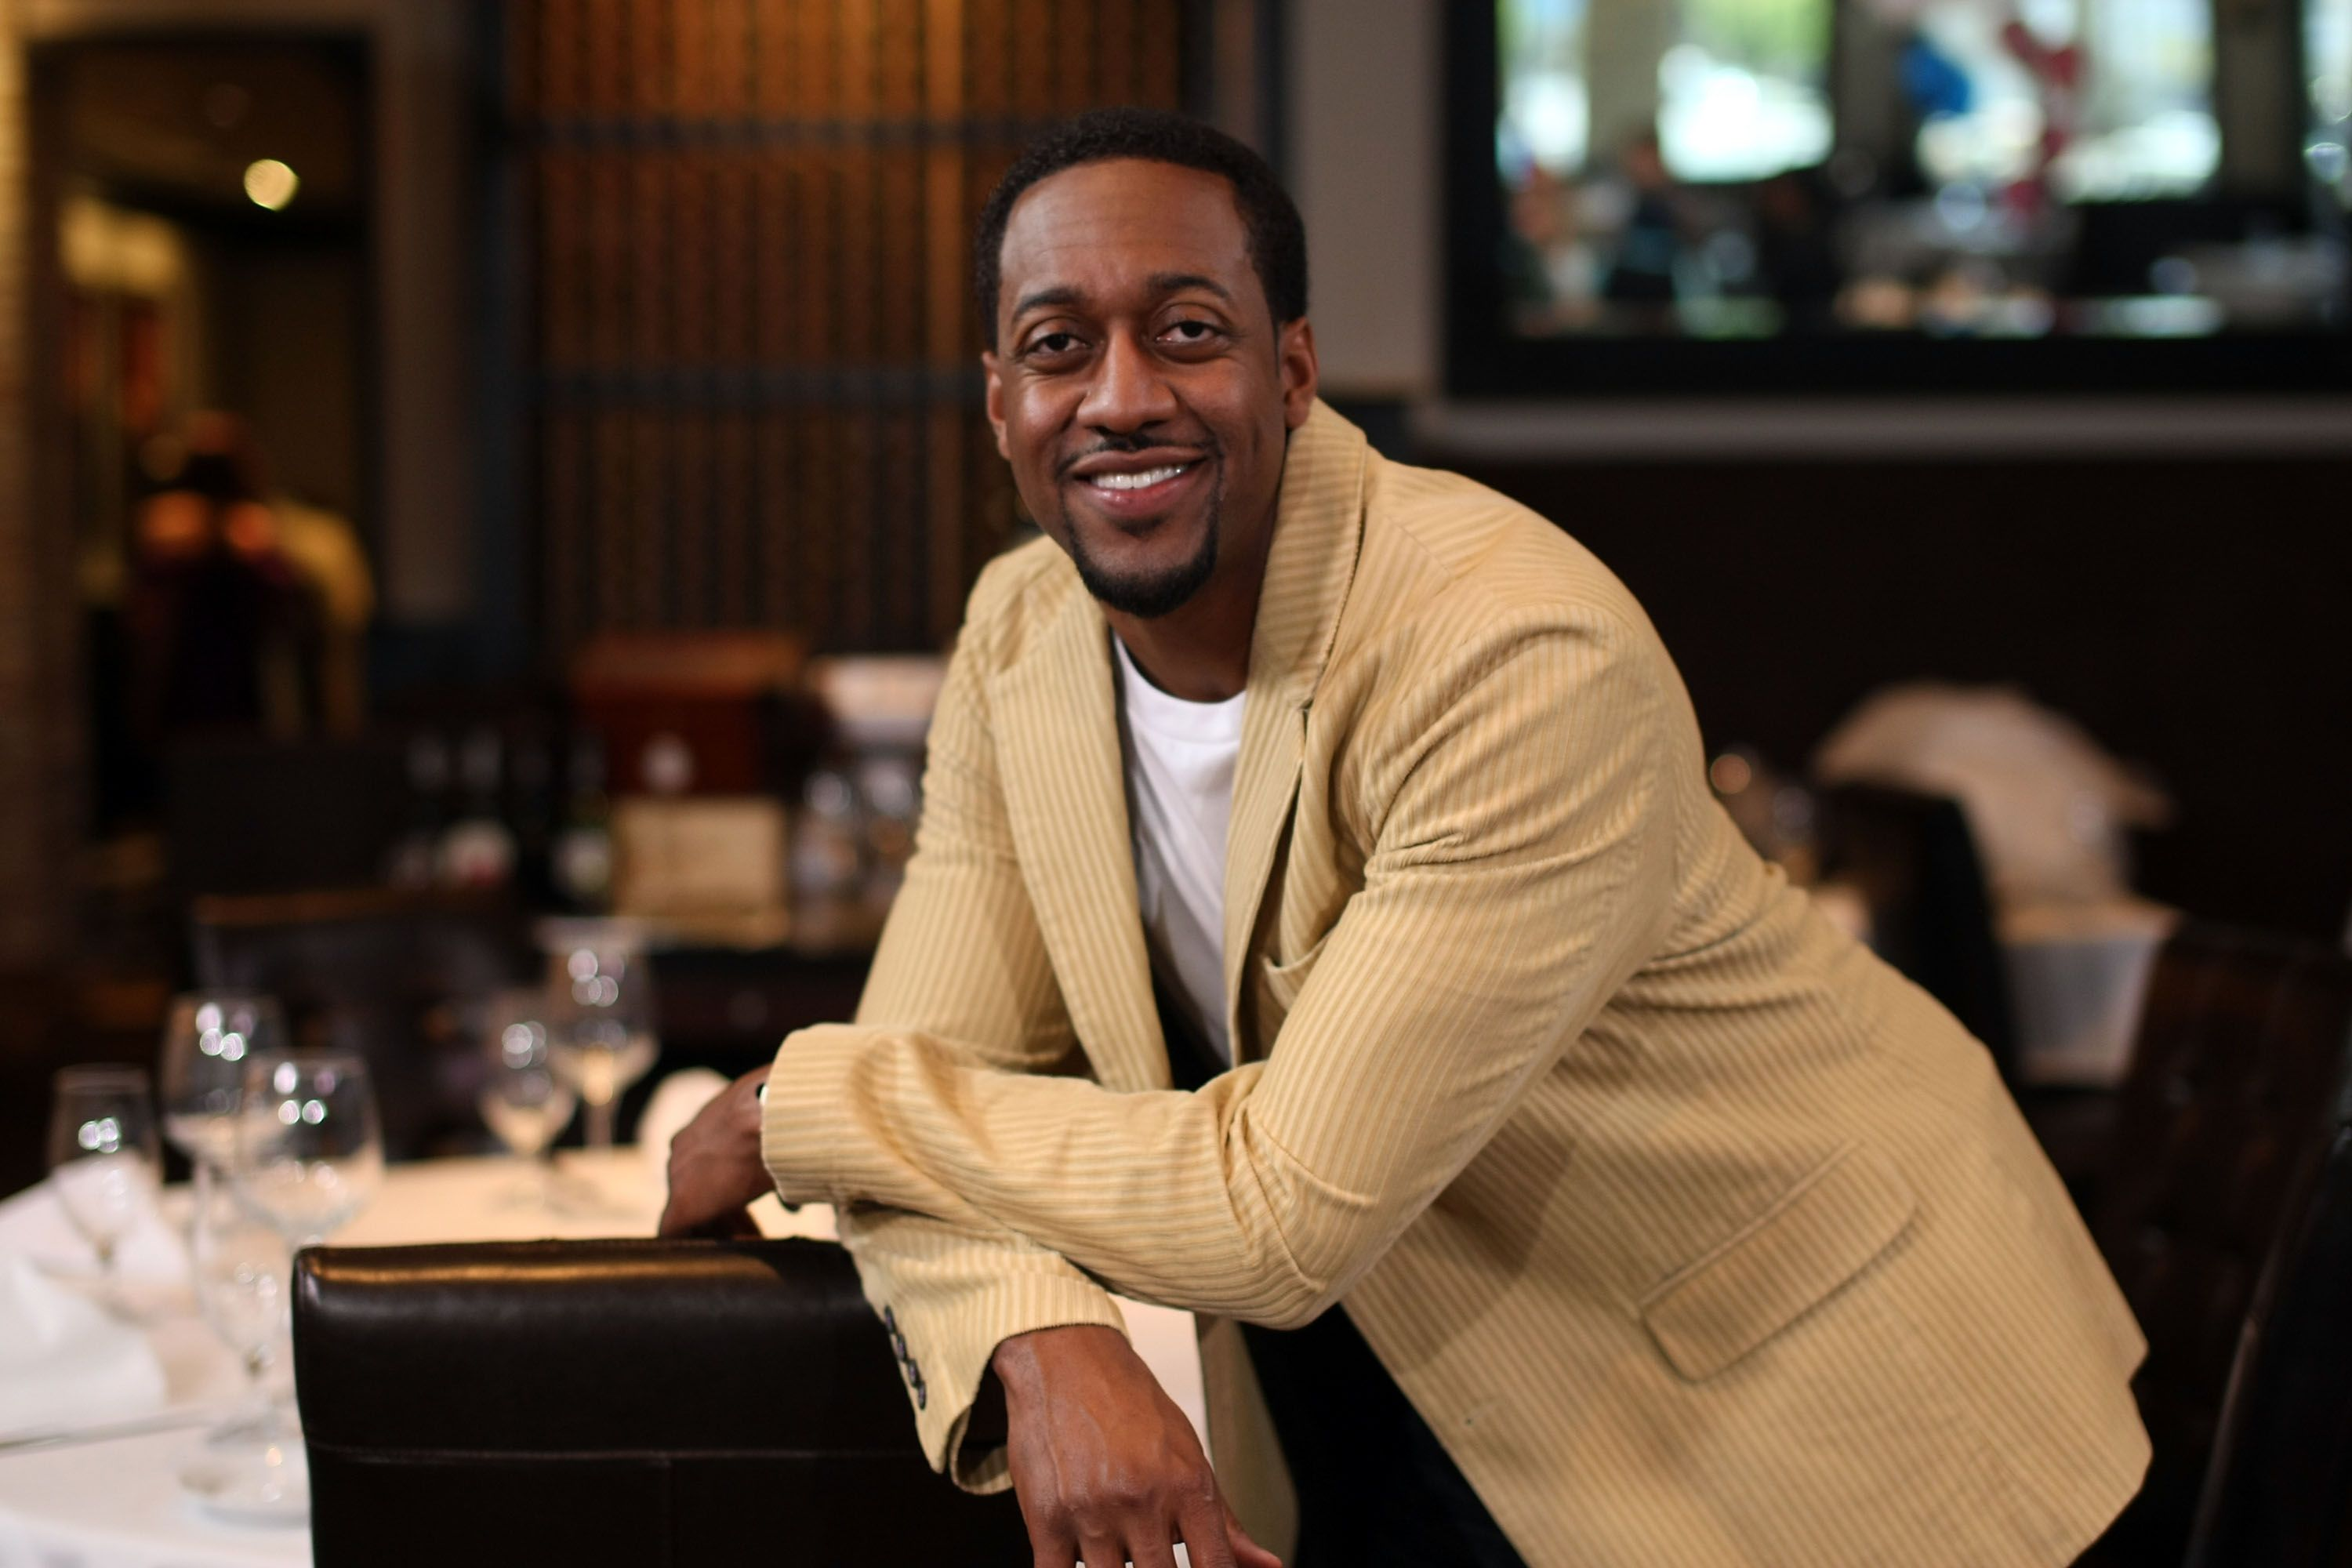 """Jaleel White on the set of """"Road to the Altar""""  in Encino, California in April 2009. 